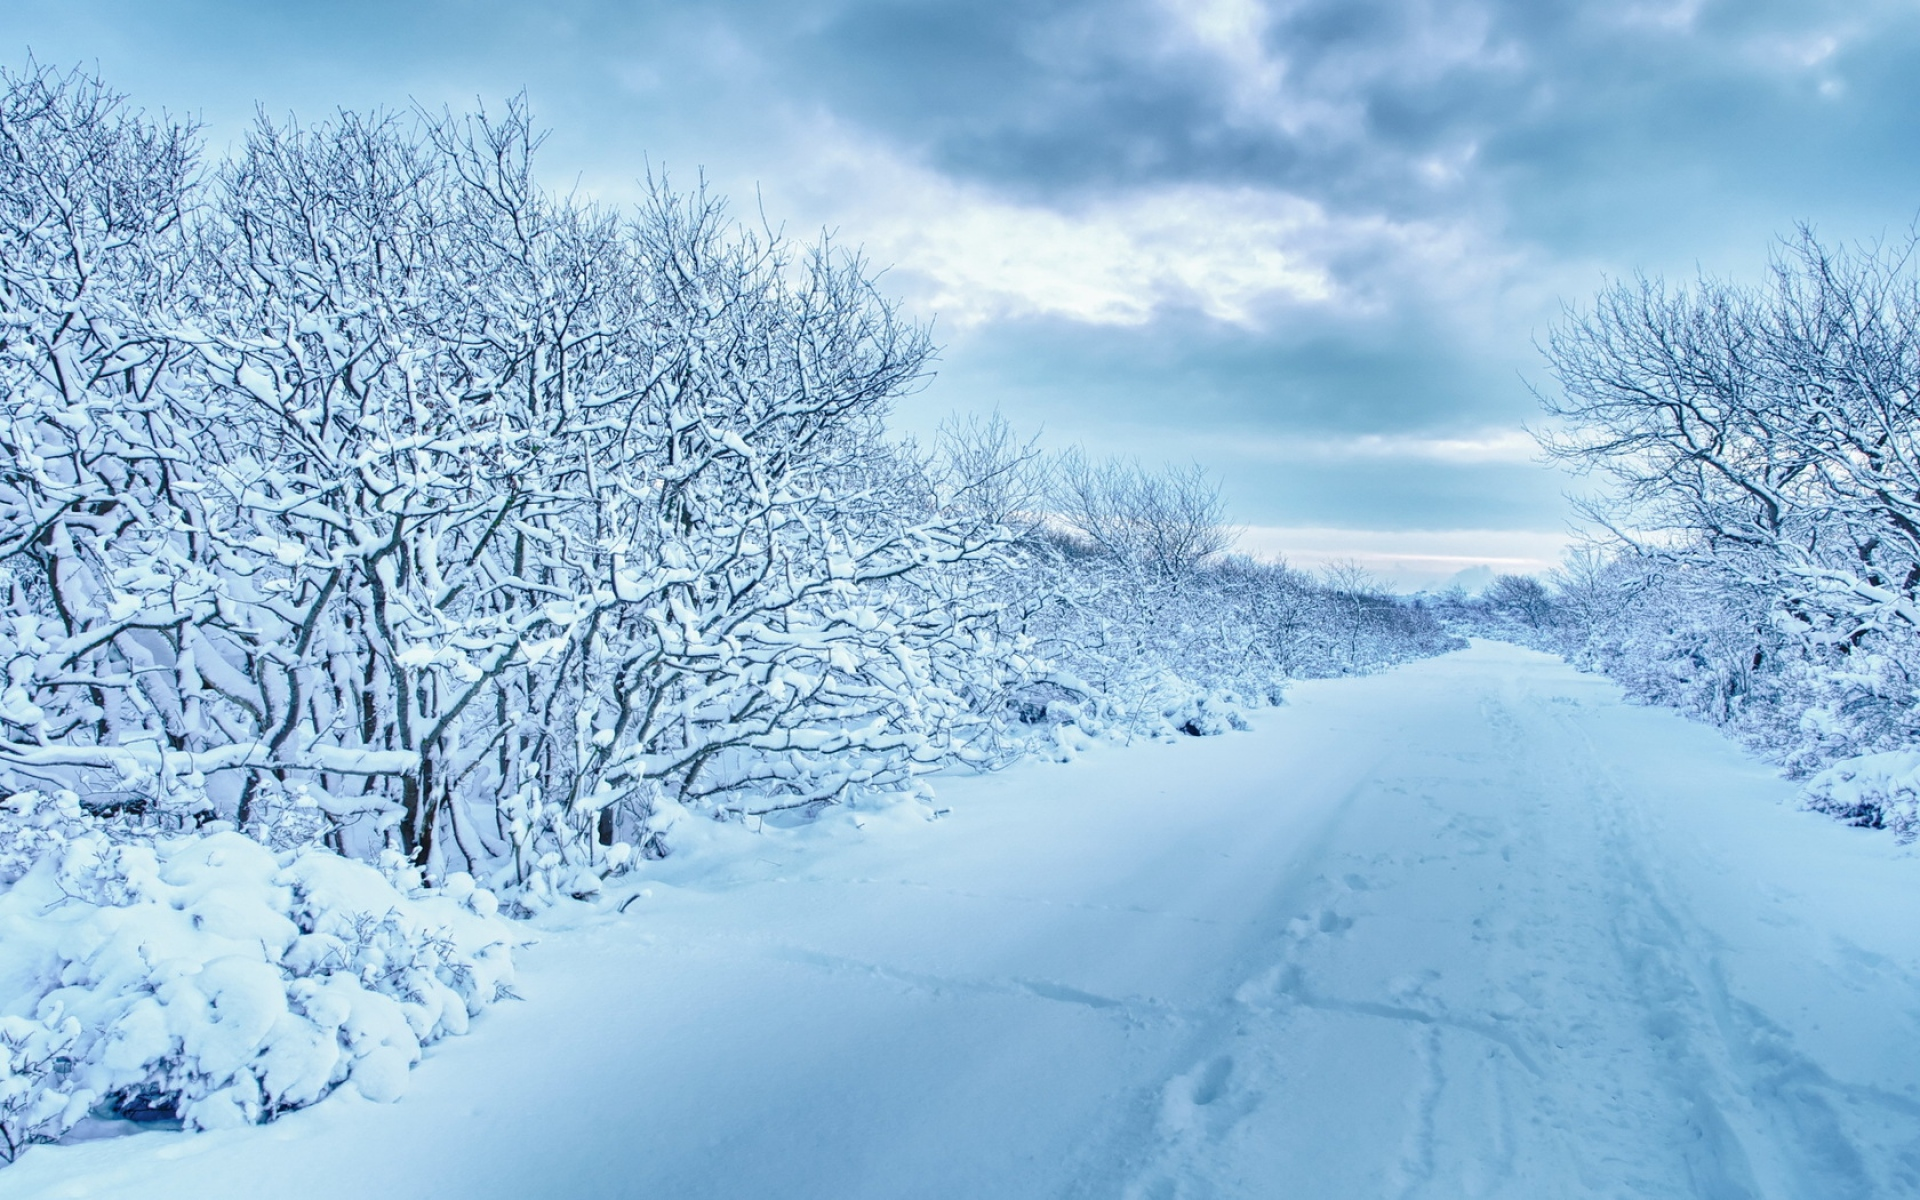 Snow Falling Wallpaper For Ipad Snowy Trees Amp Walk Way Wallpapers Snowy Trees Amp Walk Way